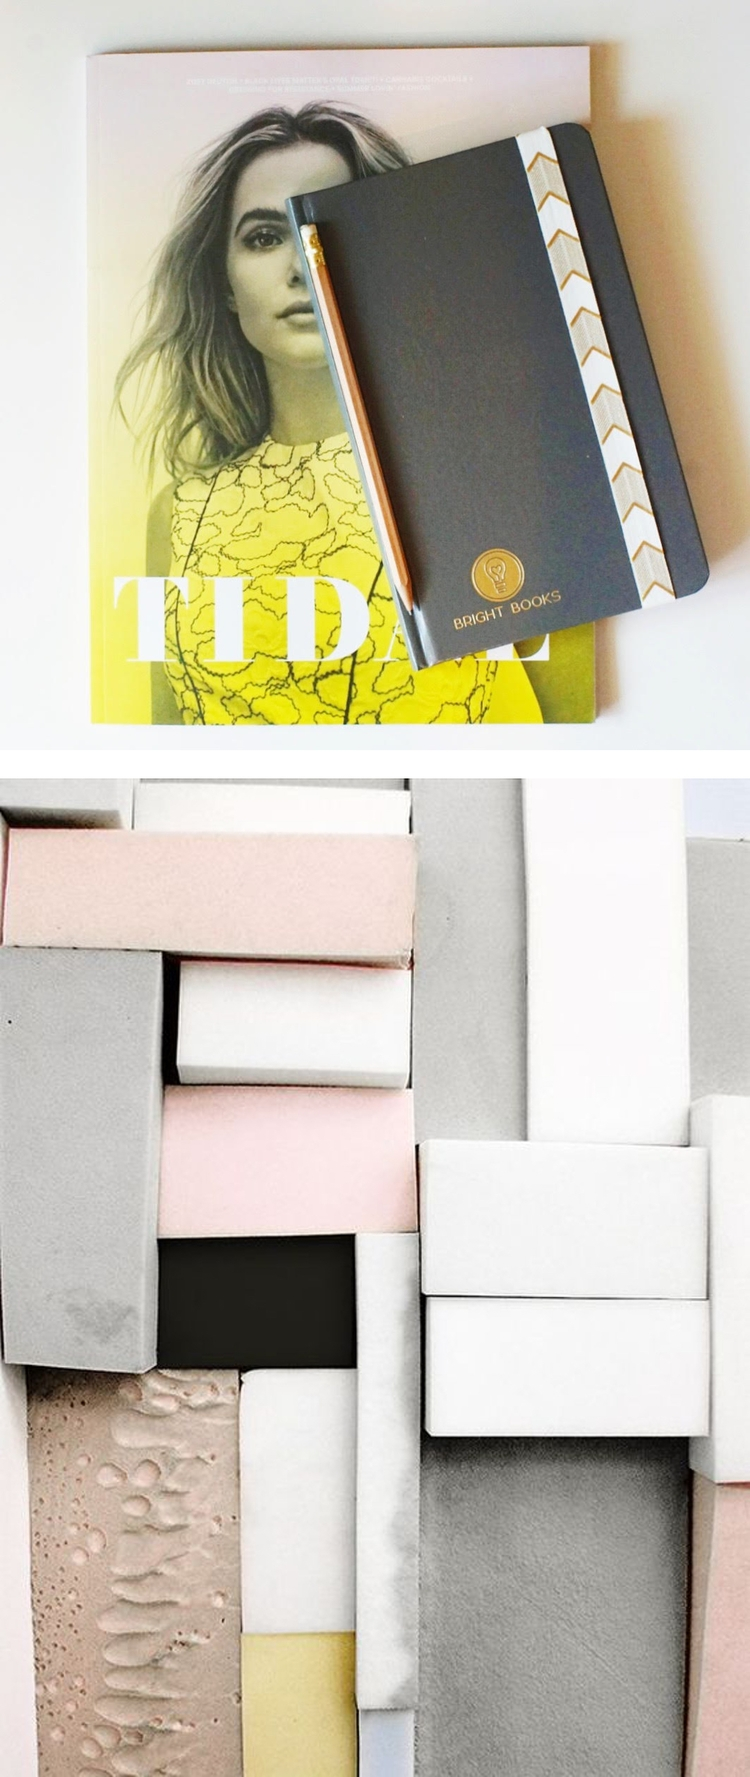 inspired writing journal Bright - lawnparty | ello